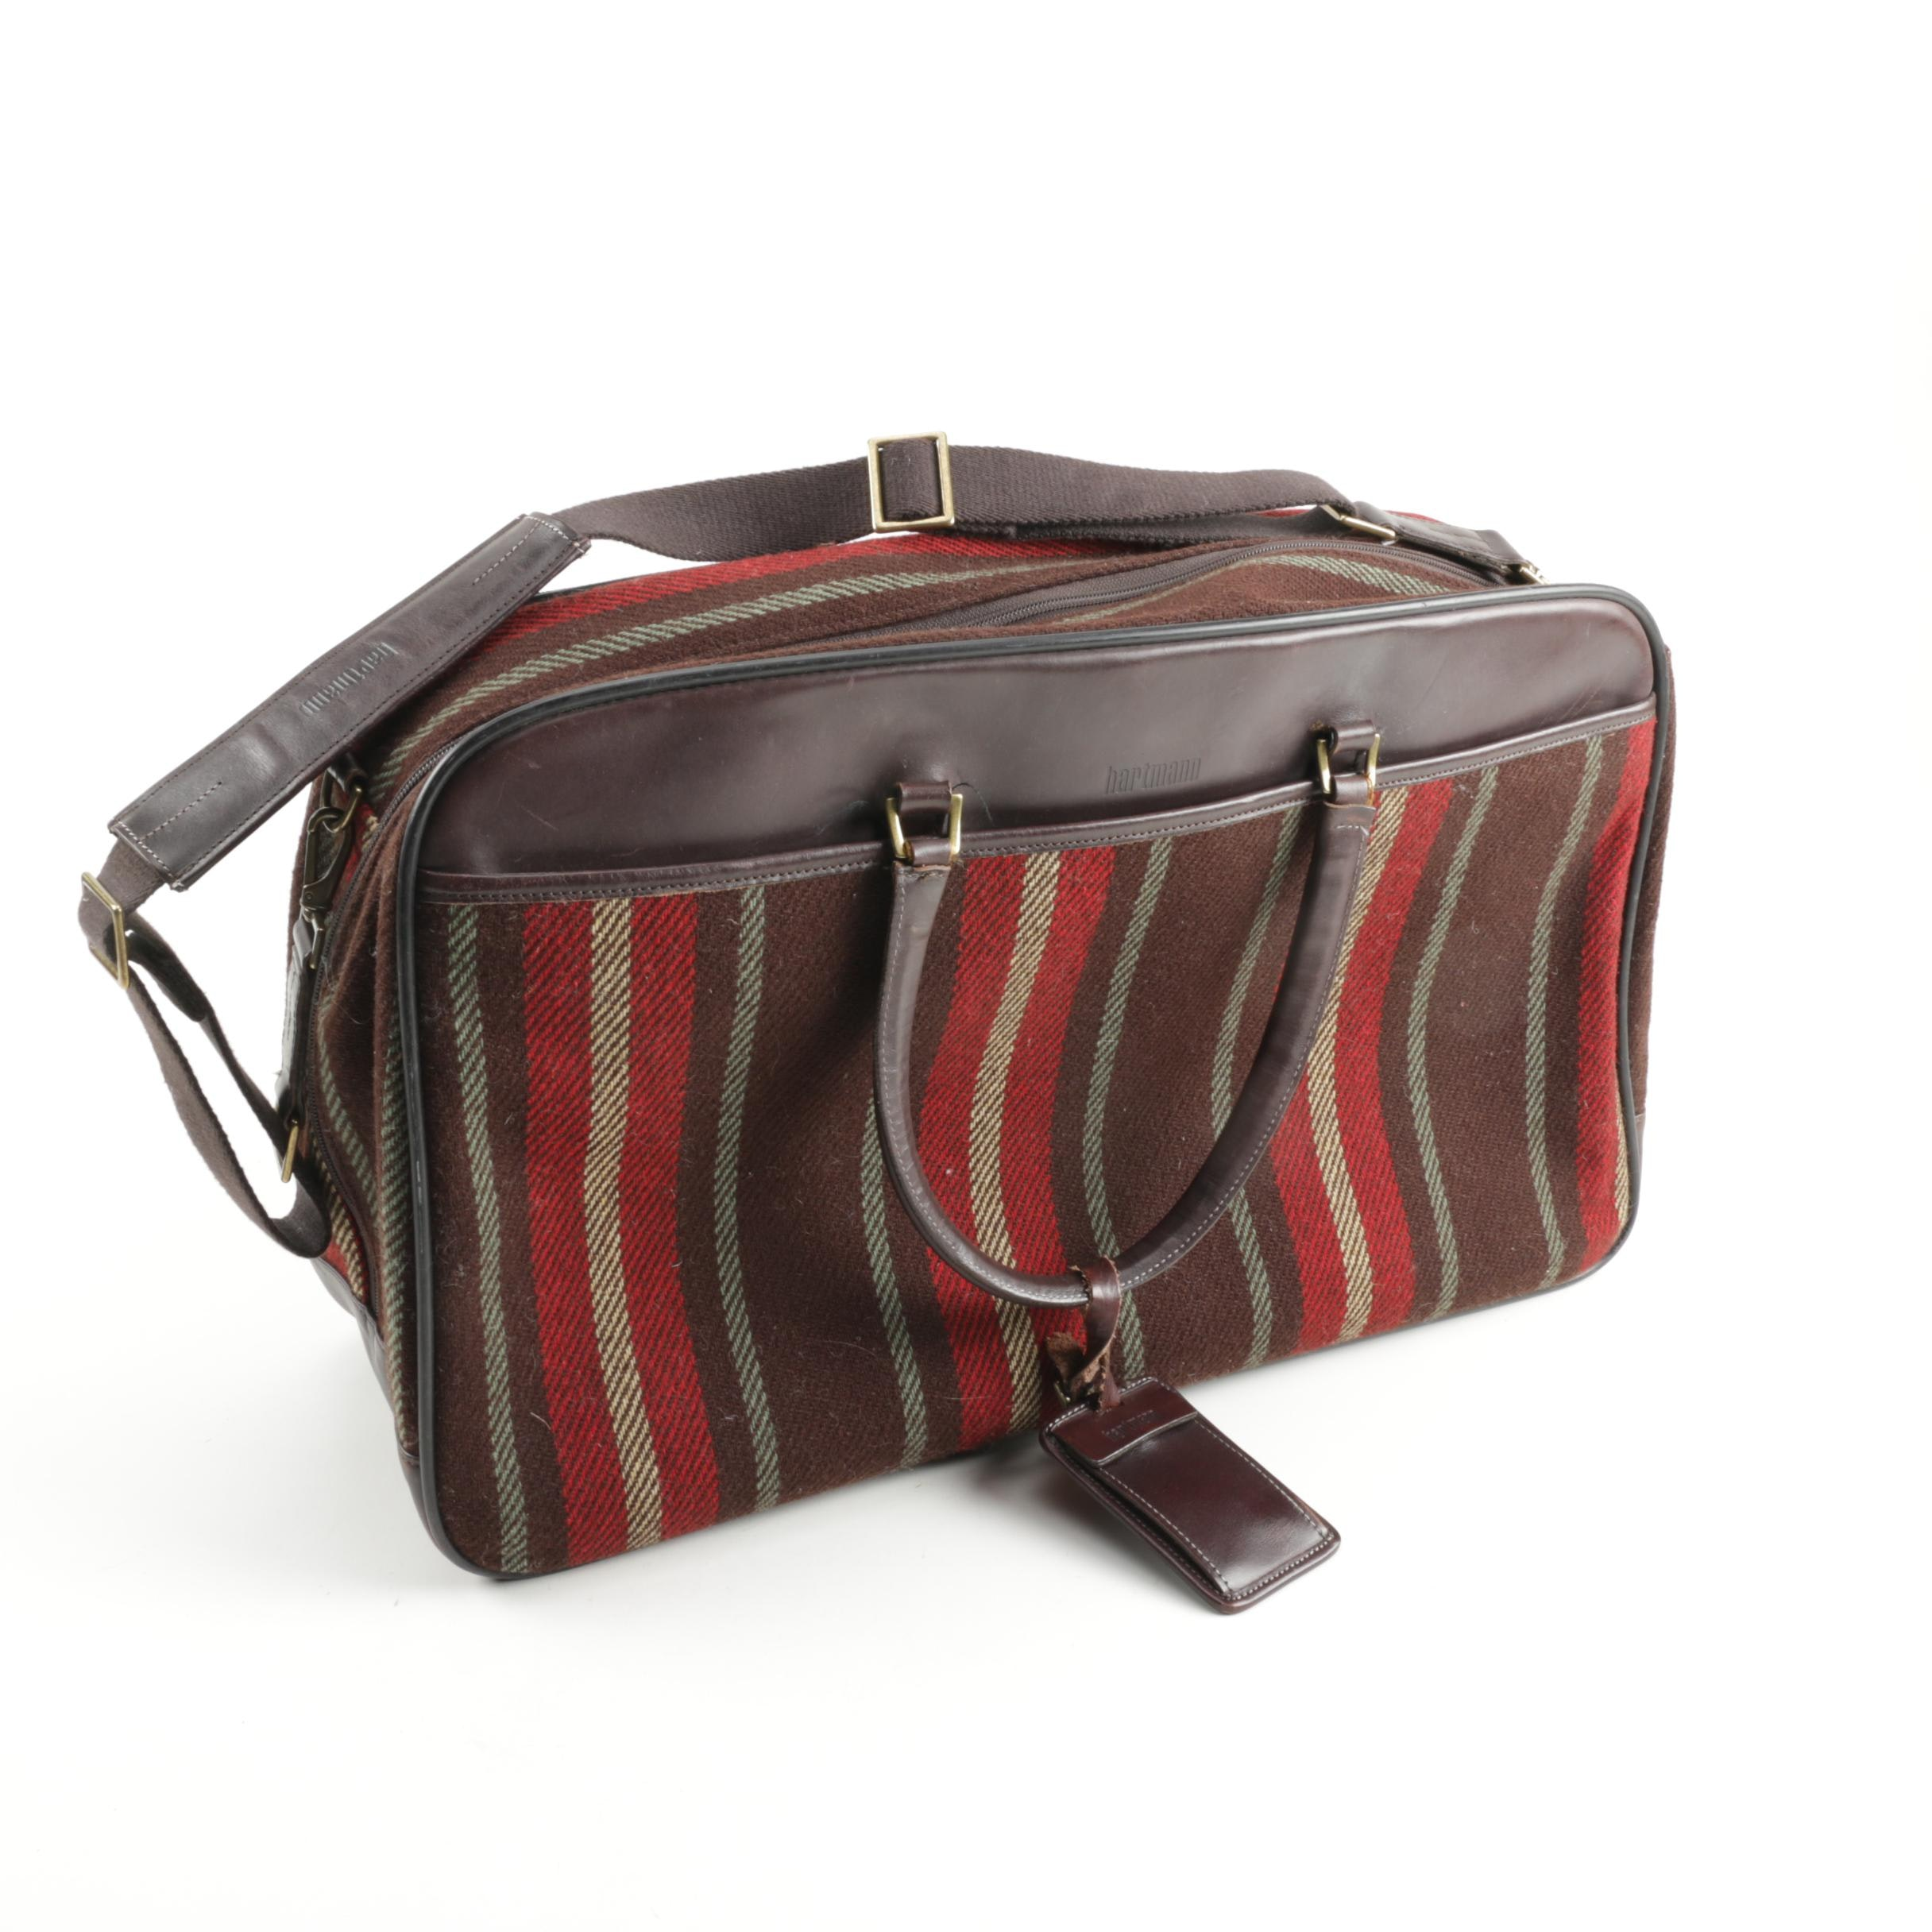 Hartmann Fabric and Leather Travel Bag